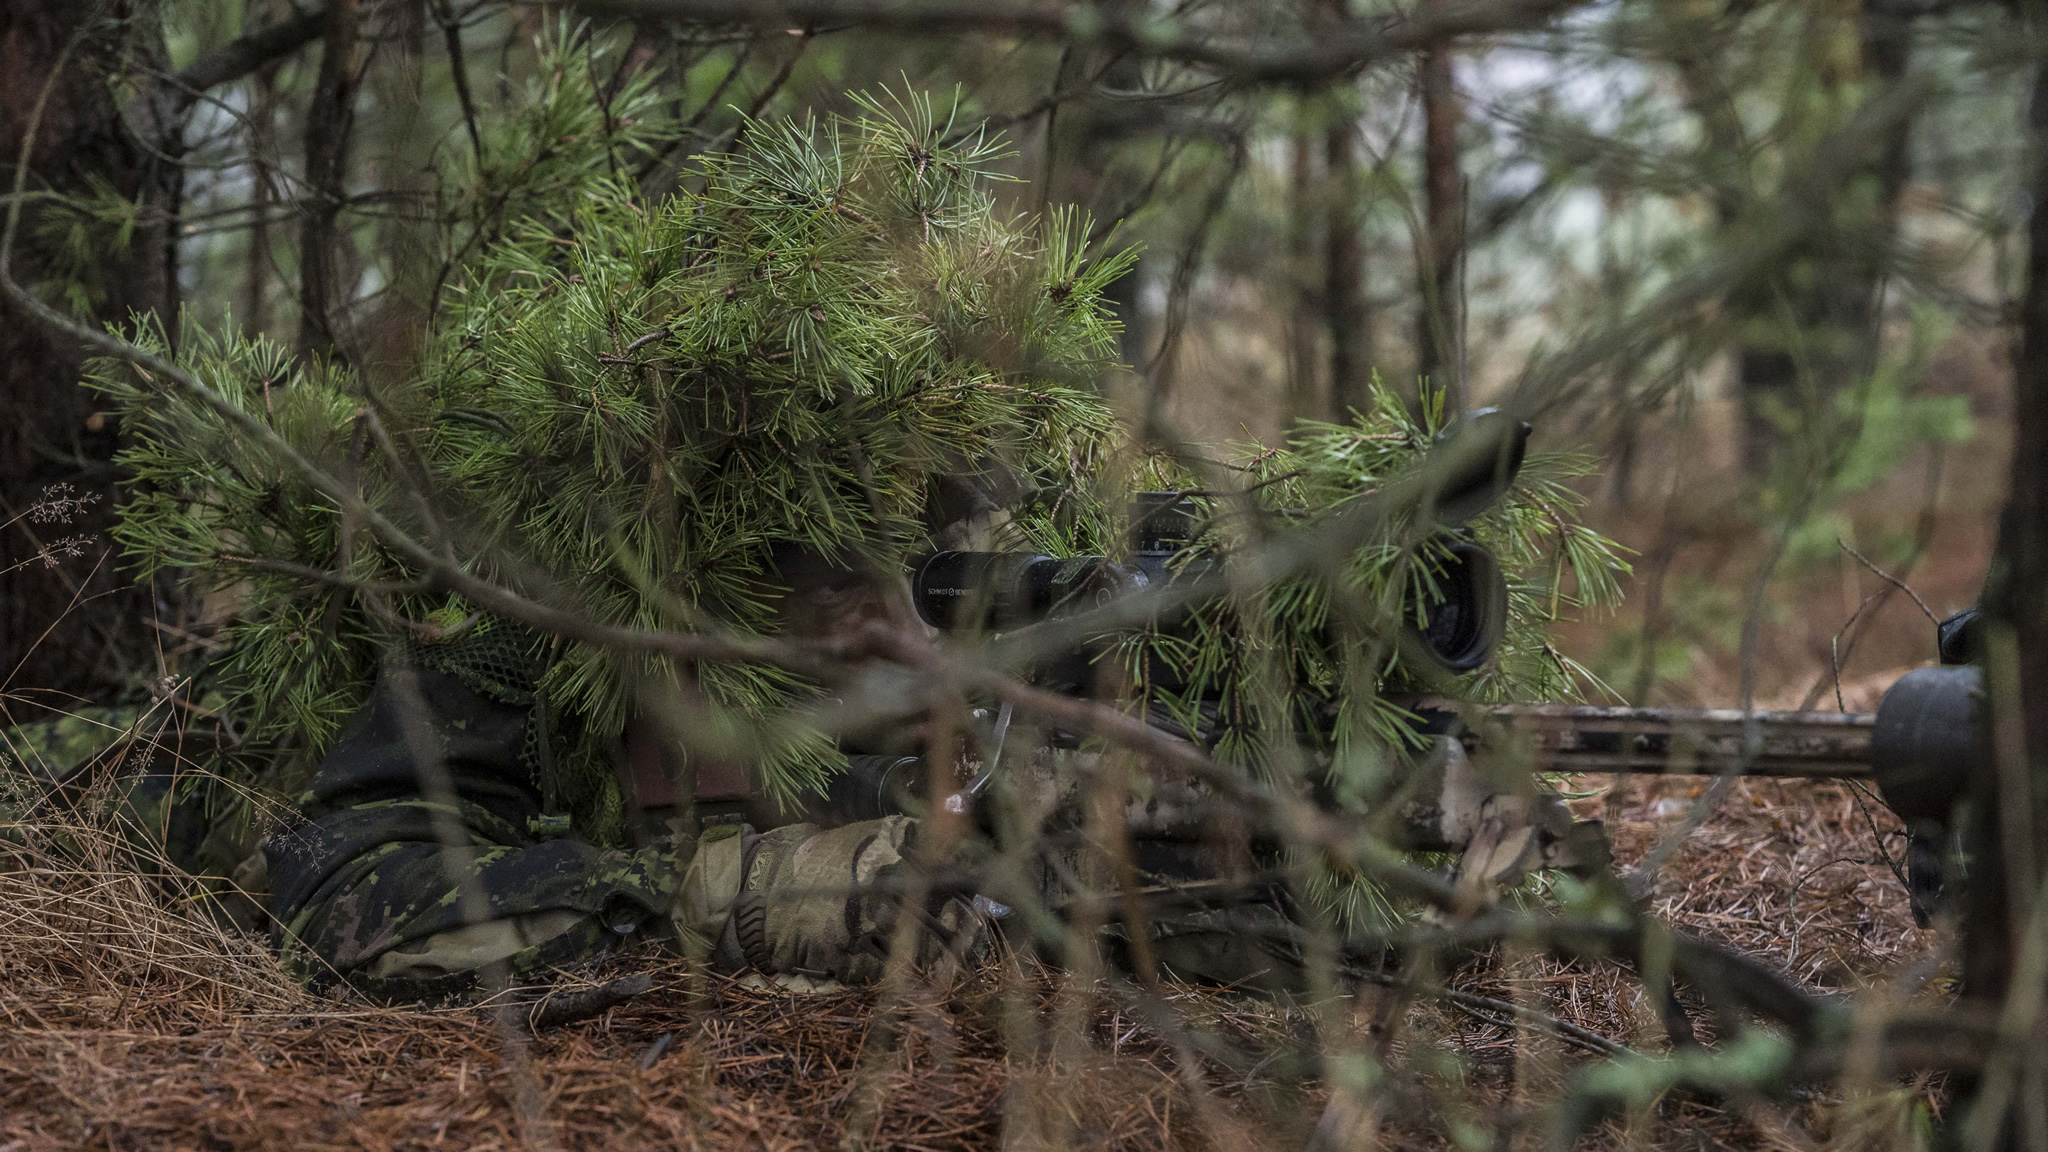 A Canadian Armed Forces sniper looks through his scope while participating in Exercise Without Warning in the training area of Glebokie, Poland on December 17, 2015 during Operation REASSURANCE. (Photo: Corporal Nathan Moulton, Land Task Force Imagery, OP REASSURANCE)